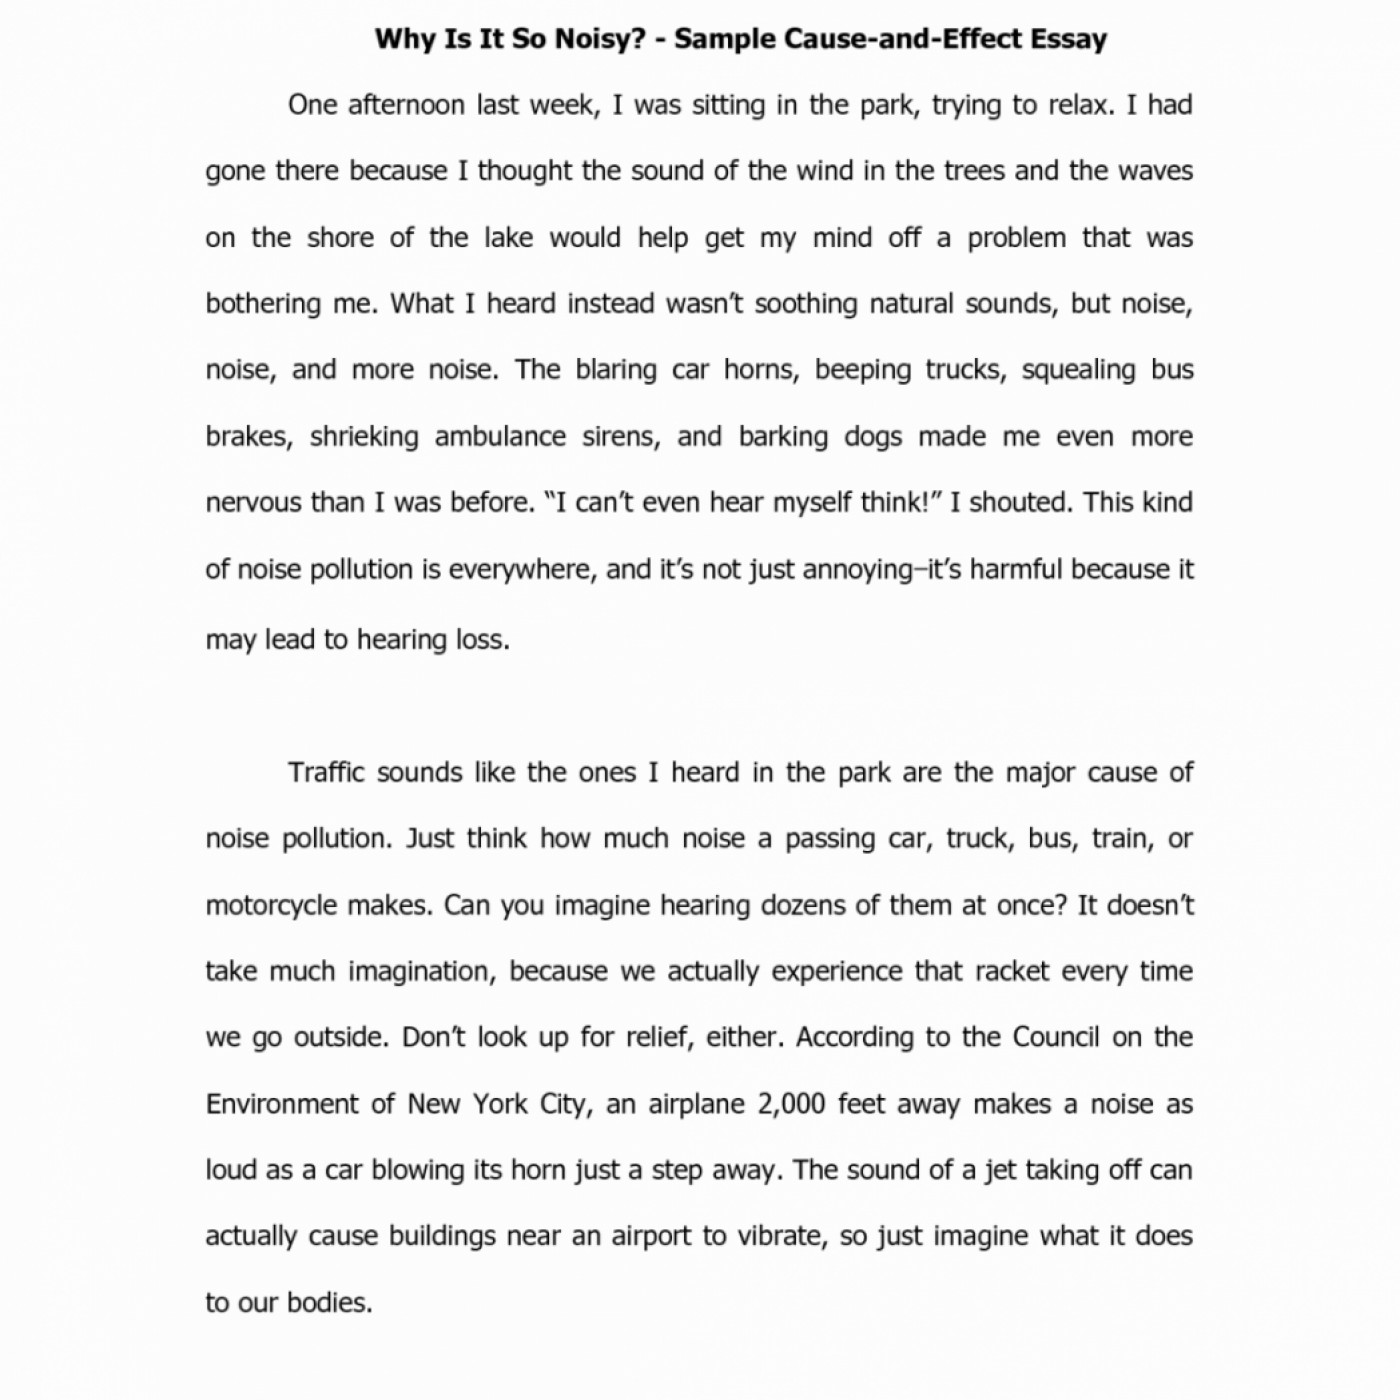 027 Cause And Effect Essays Format Best Of For Or Good Cover Bystander Domino Analysis Ielts Free 6th Grade College Pdf Middle School 1048x1048 Amazing Essay Examples On Stress 4th 1400